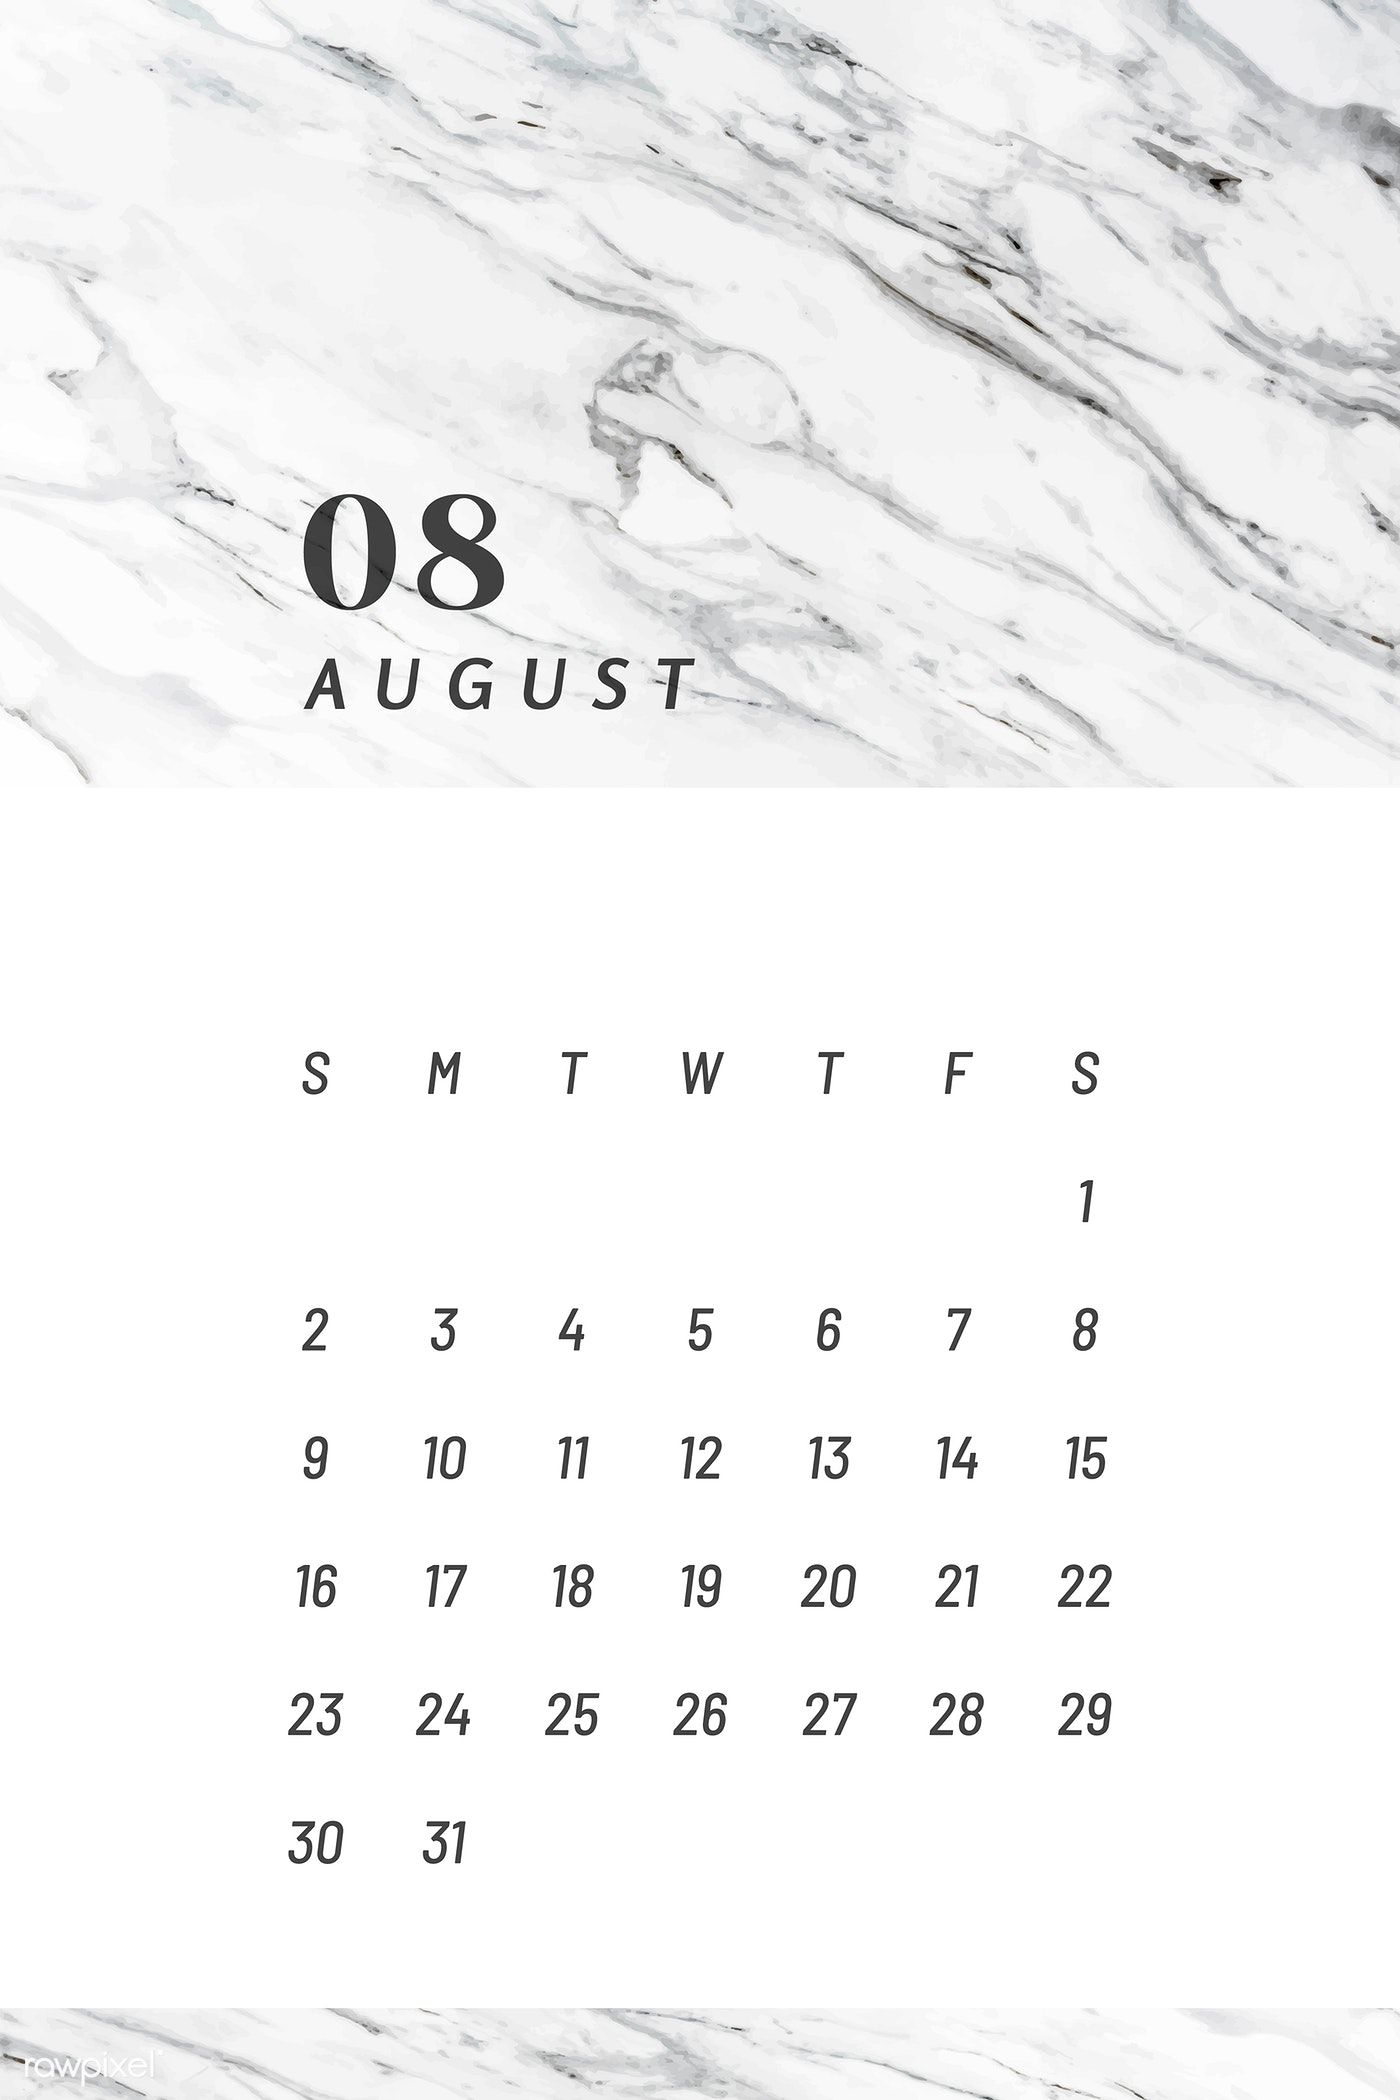 Download premium vector of Black and white August calendar